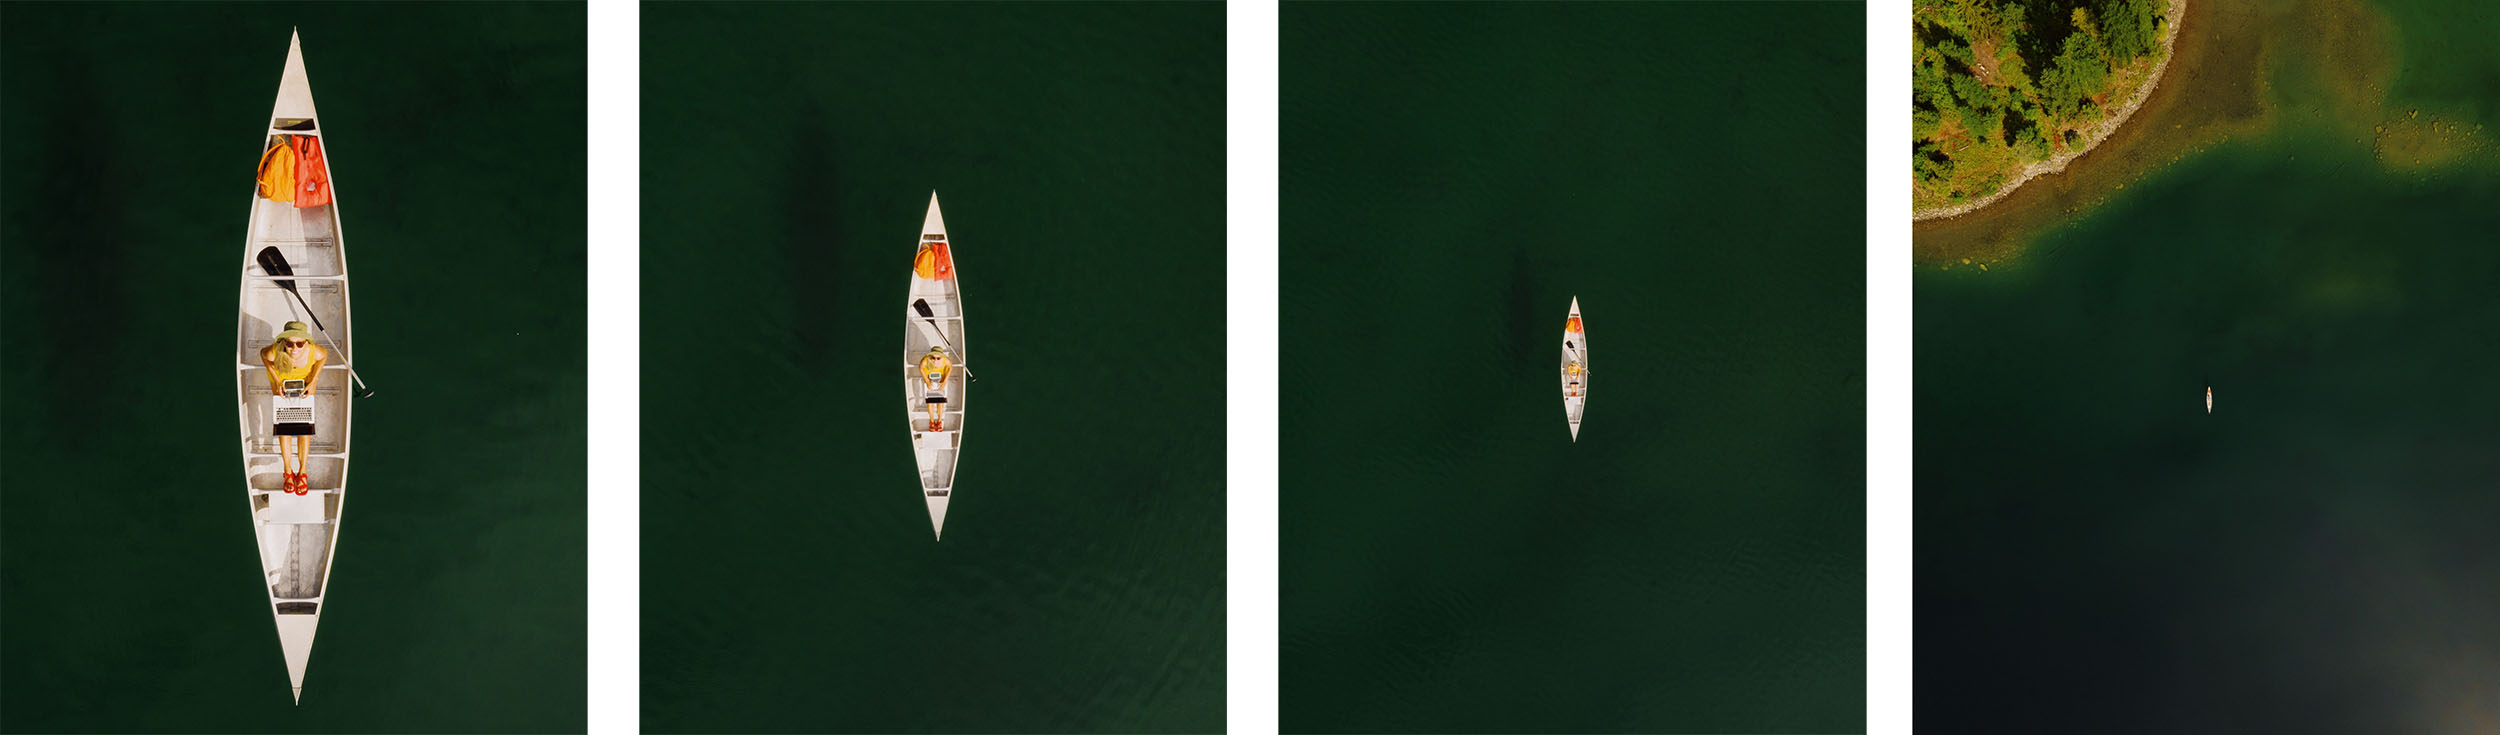 canoe_drone_sequence